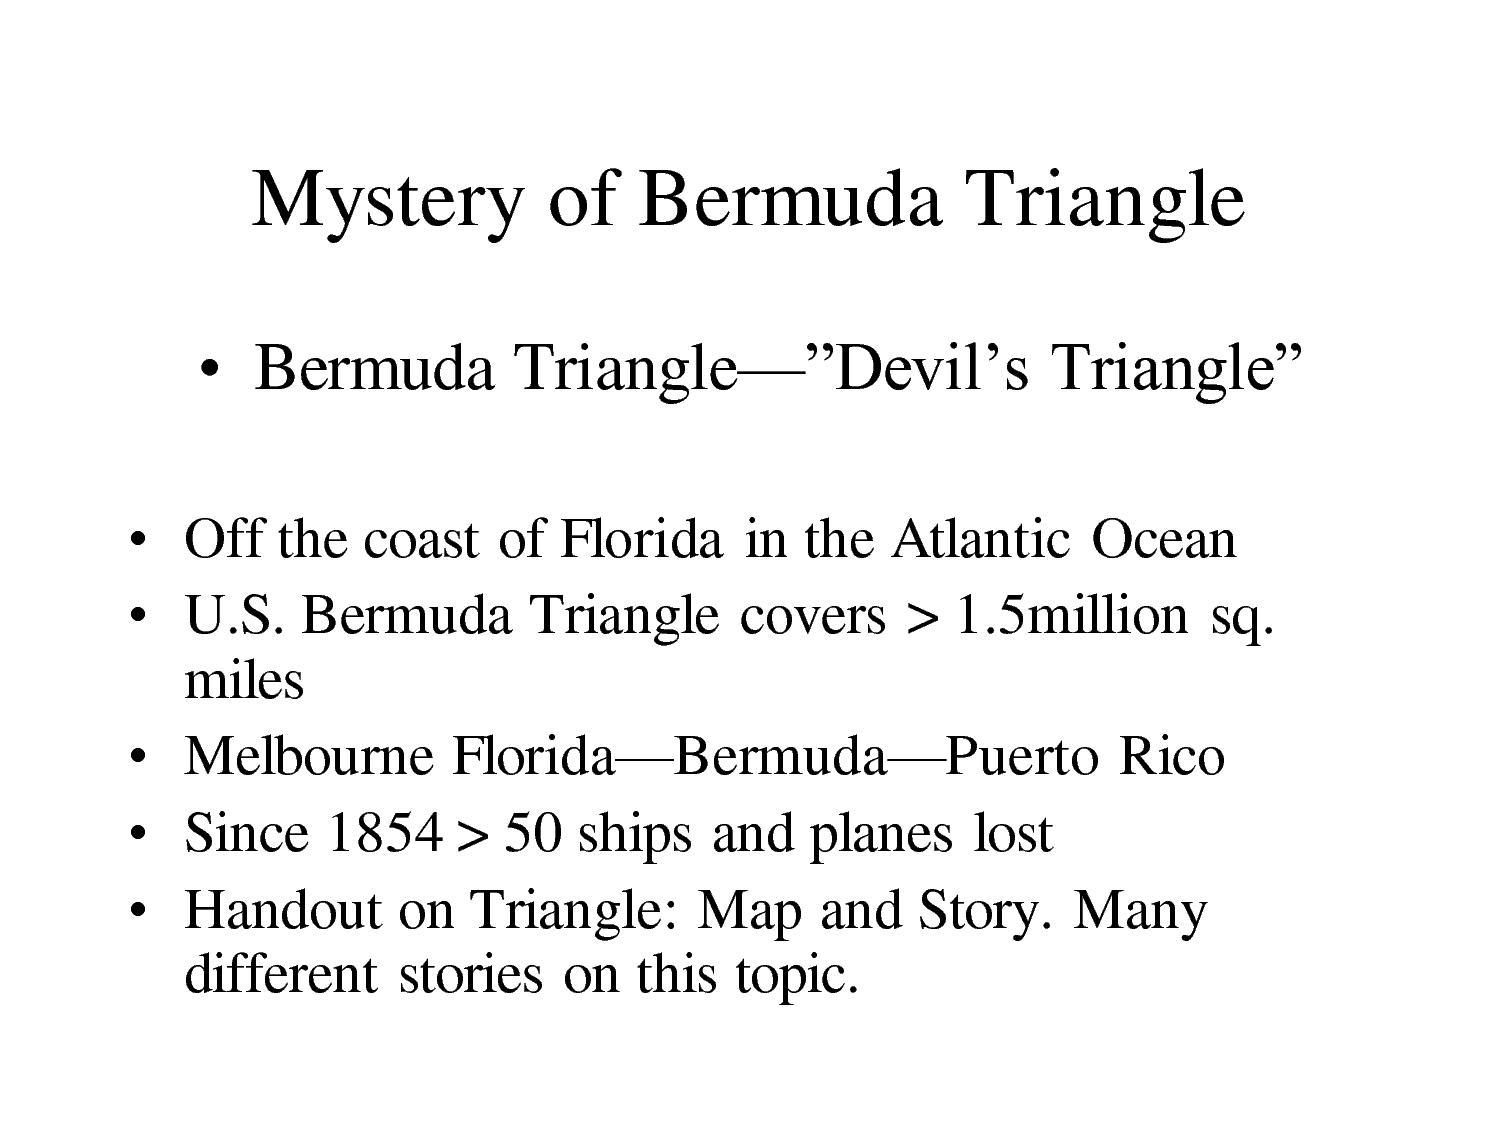 bermuda triangle research questions